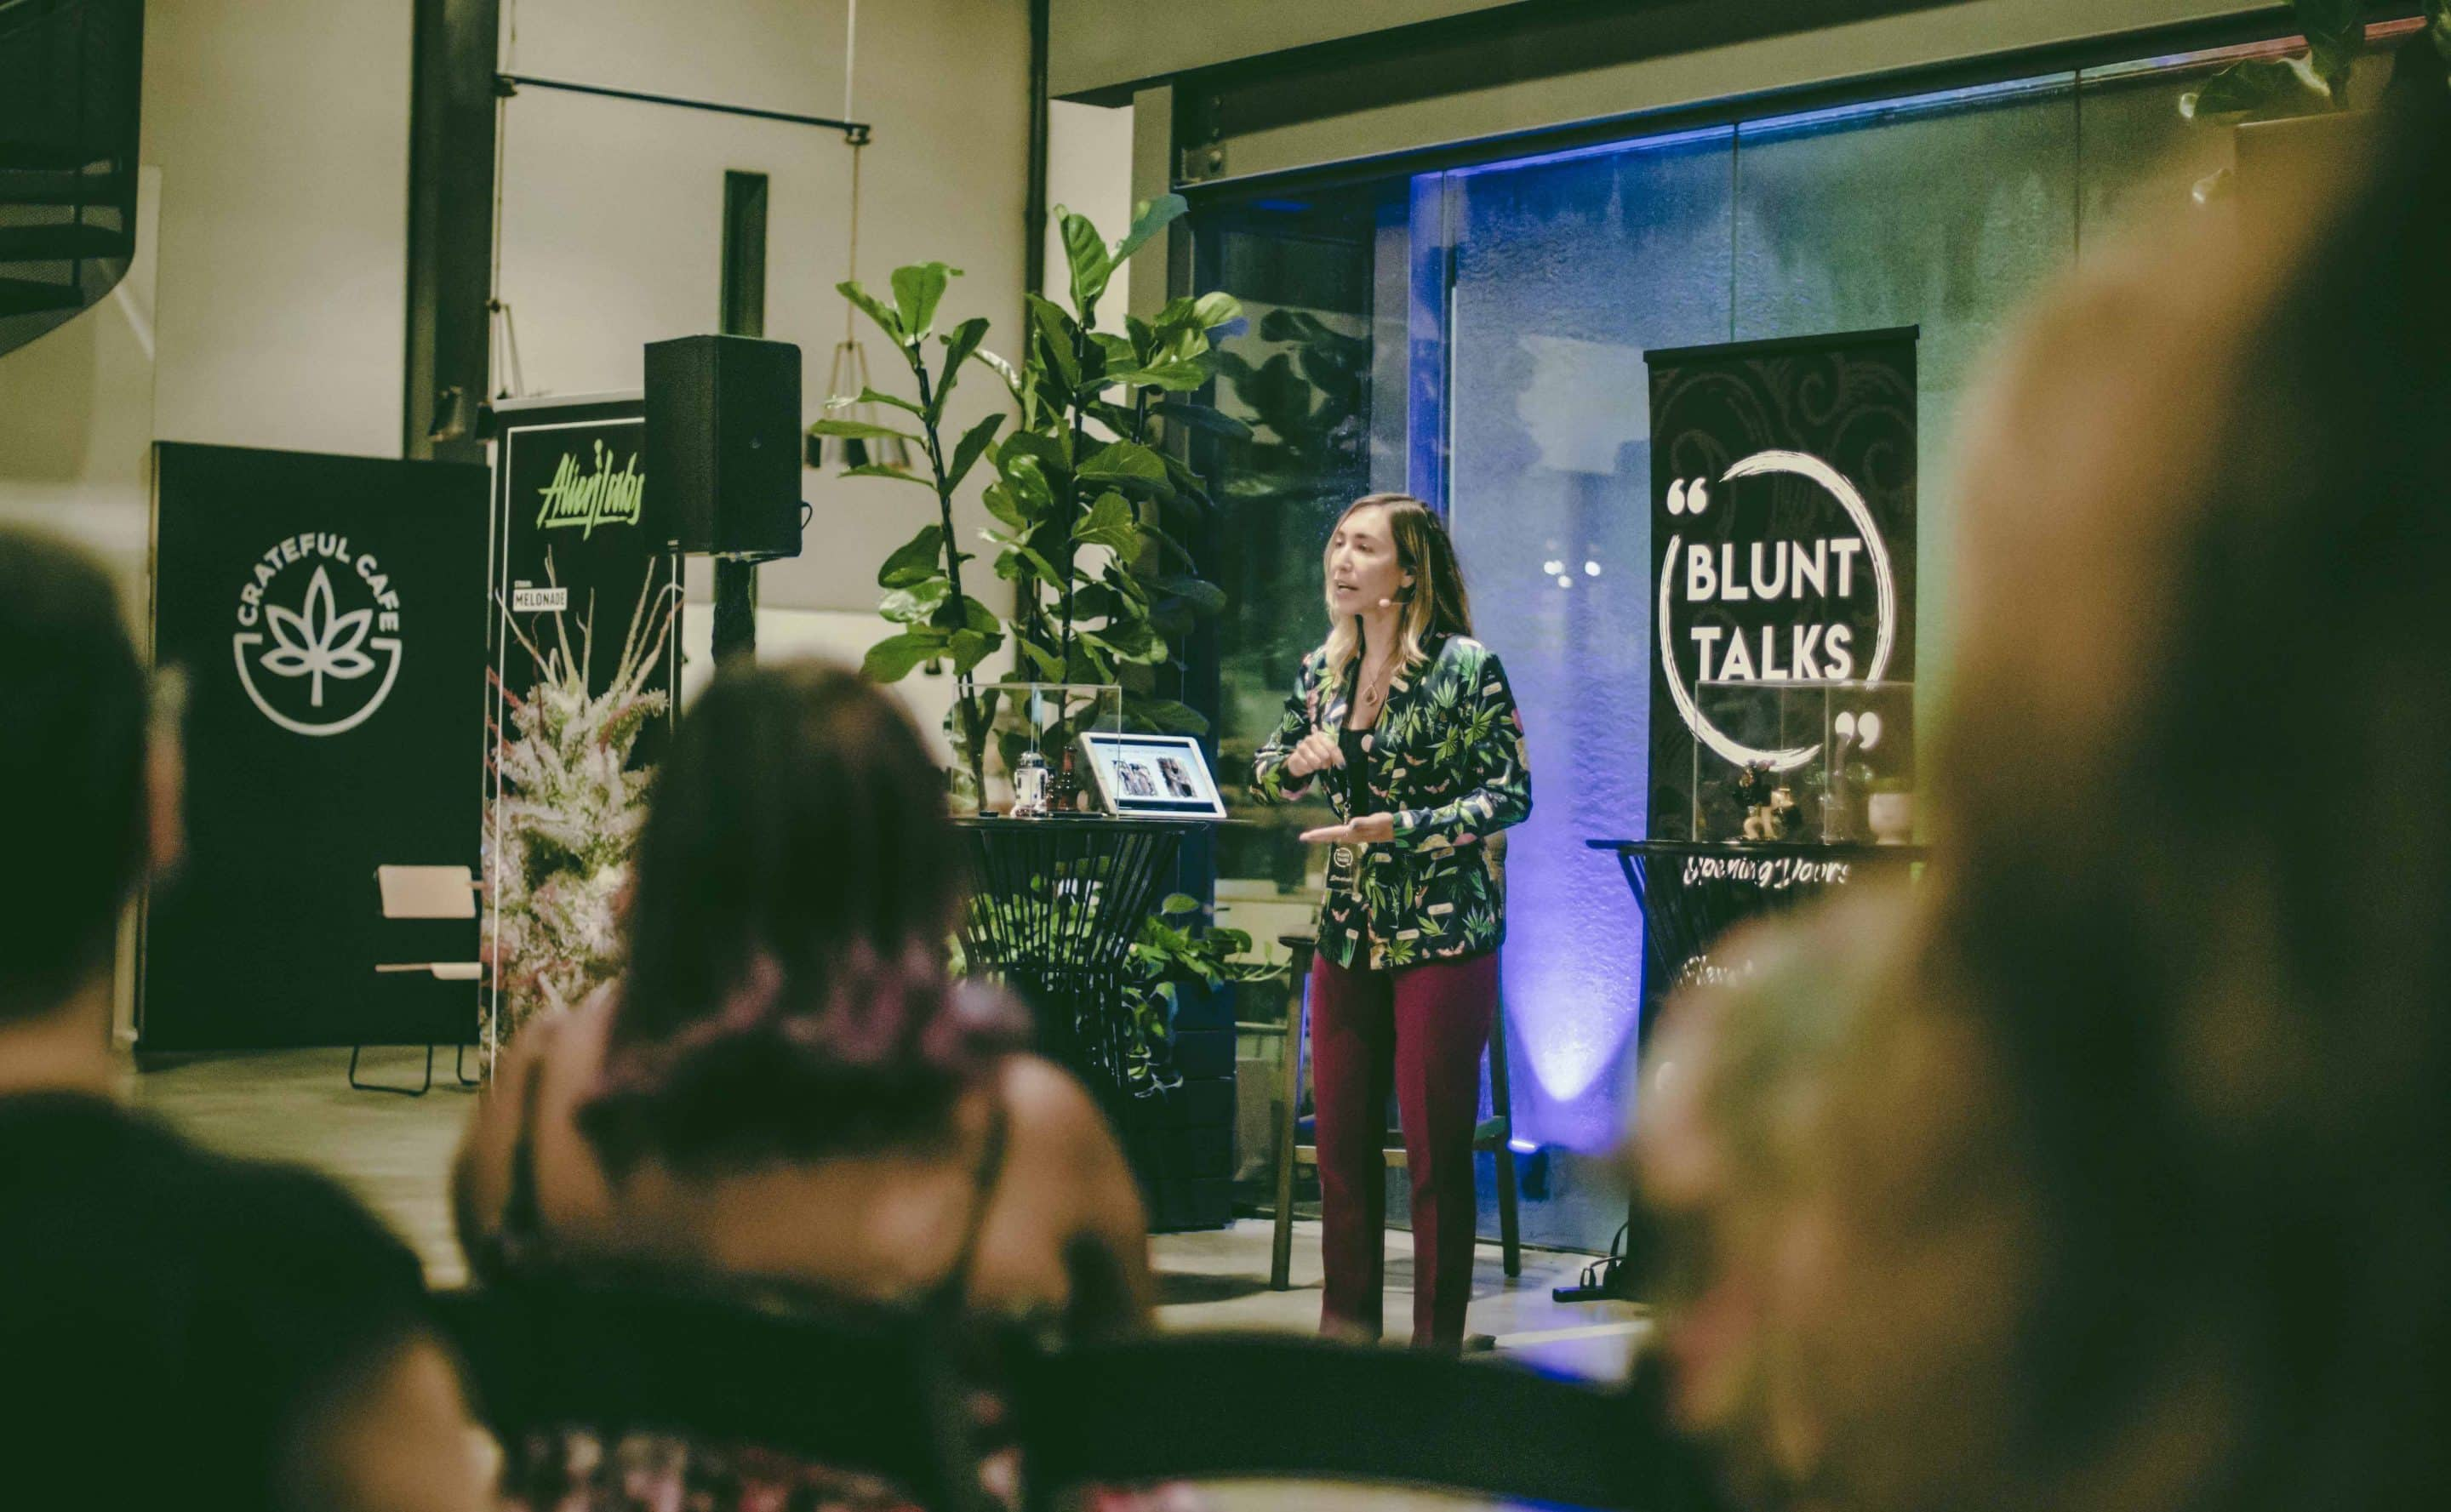 An expert in cannabis business law, Ariel Clark took her time at the event to discuss the importance of mentoring. Two of the girls she mentored were at the event, including Blunt Talks Director of Operations, and co-host for the evening, Nichole West.